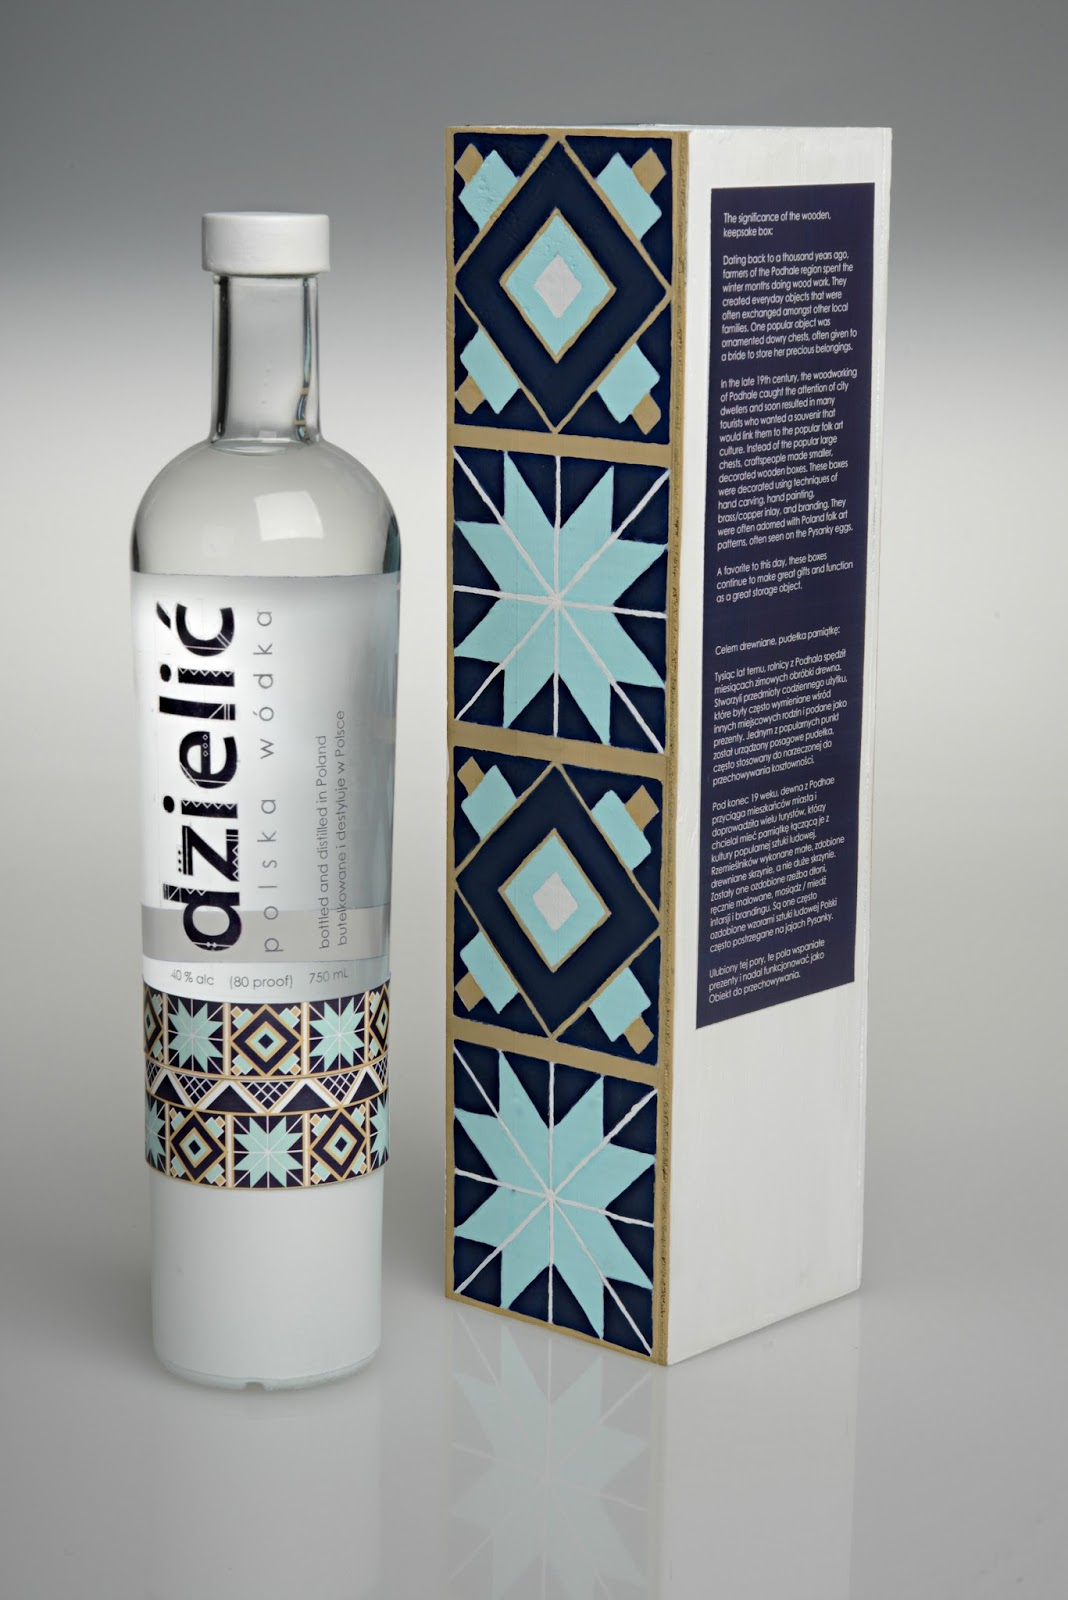 Dzielić Wódka label and packaging designed by Morgan Glisczinski